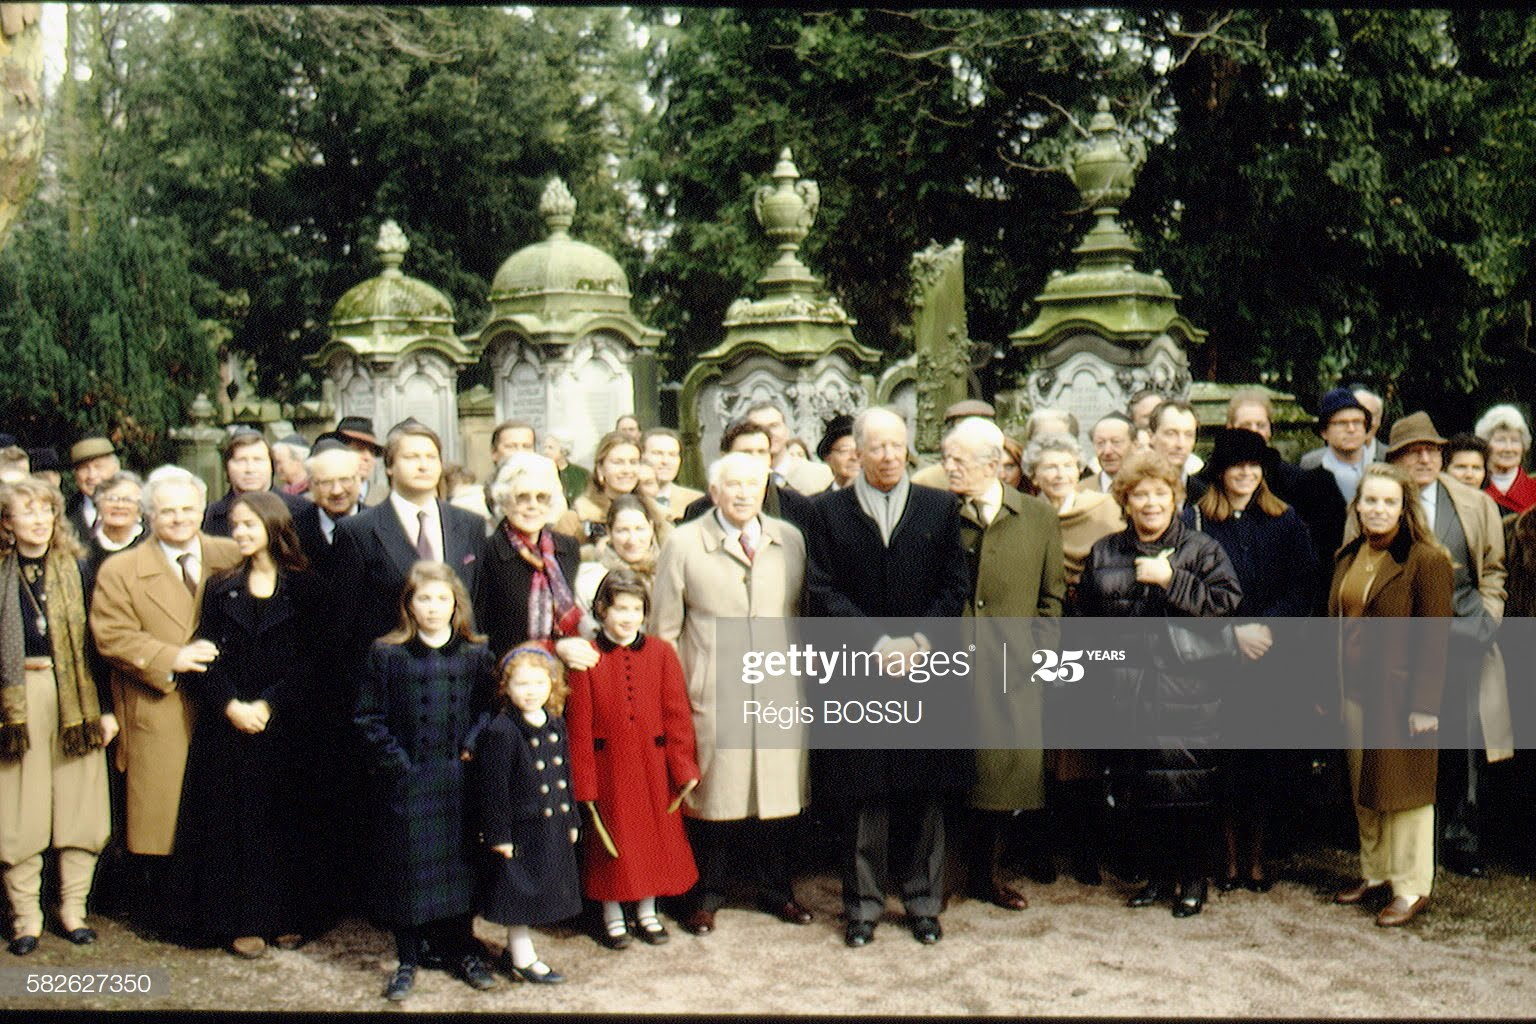 The Rothschild Family in the Frankfurt Jewish cimetery. (Photo by Régis BOSSU/Sygma via Getty Images)